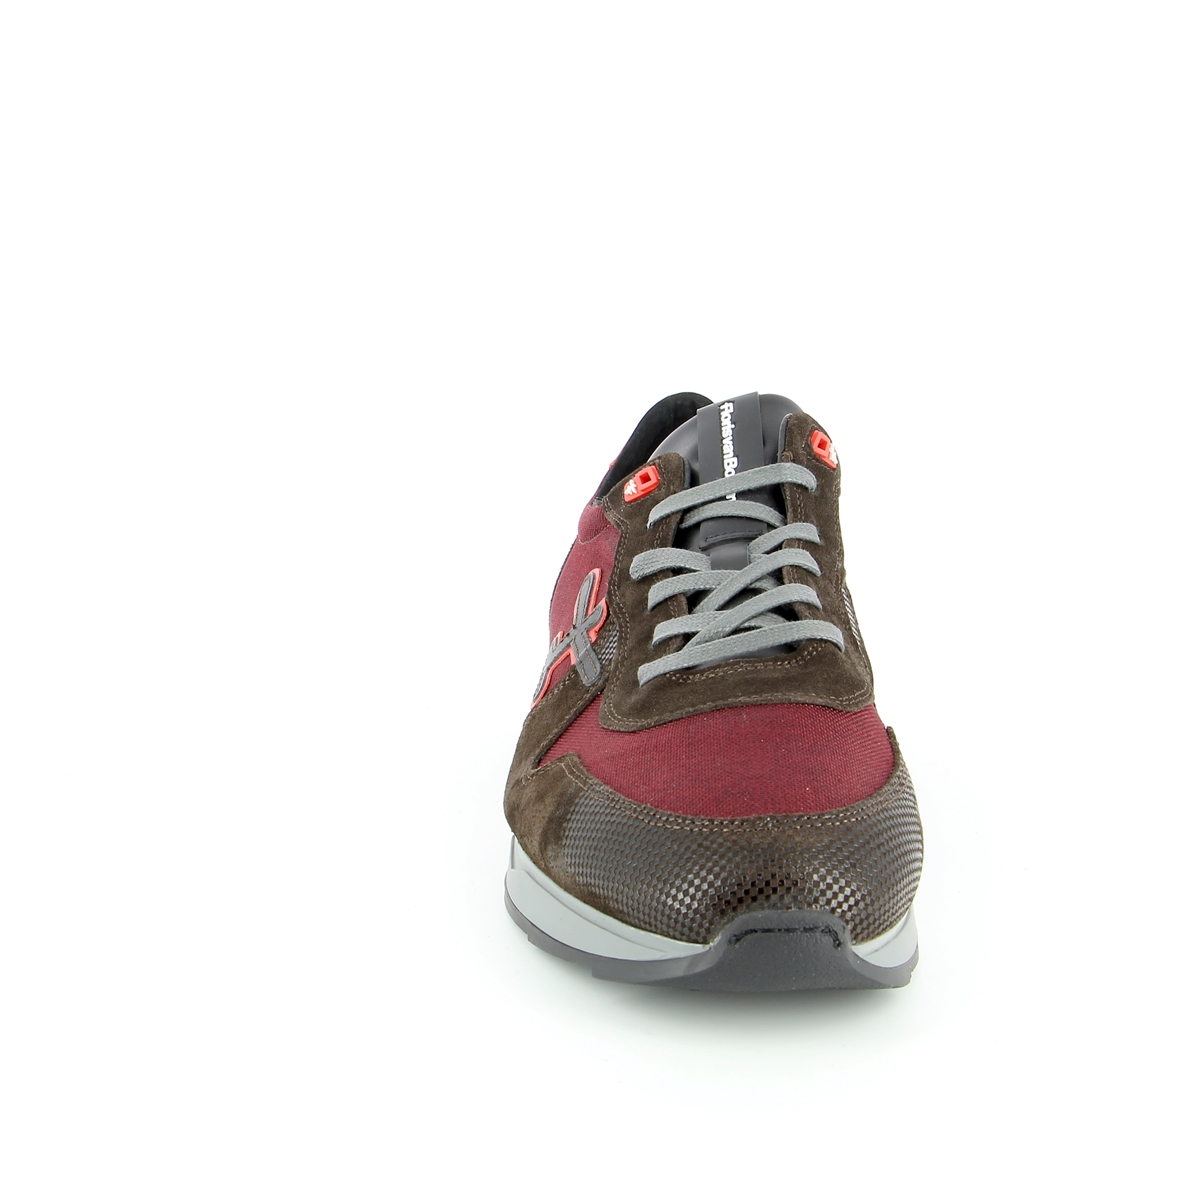 Floris Van Bommel Sneakers bordeaux